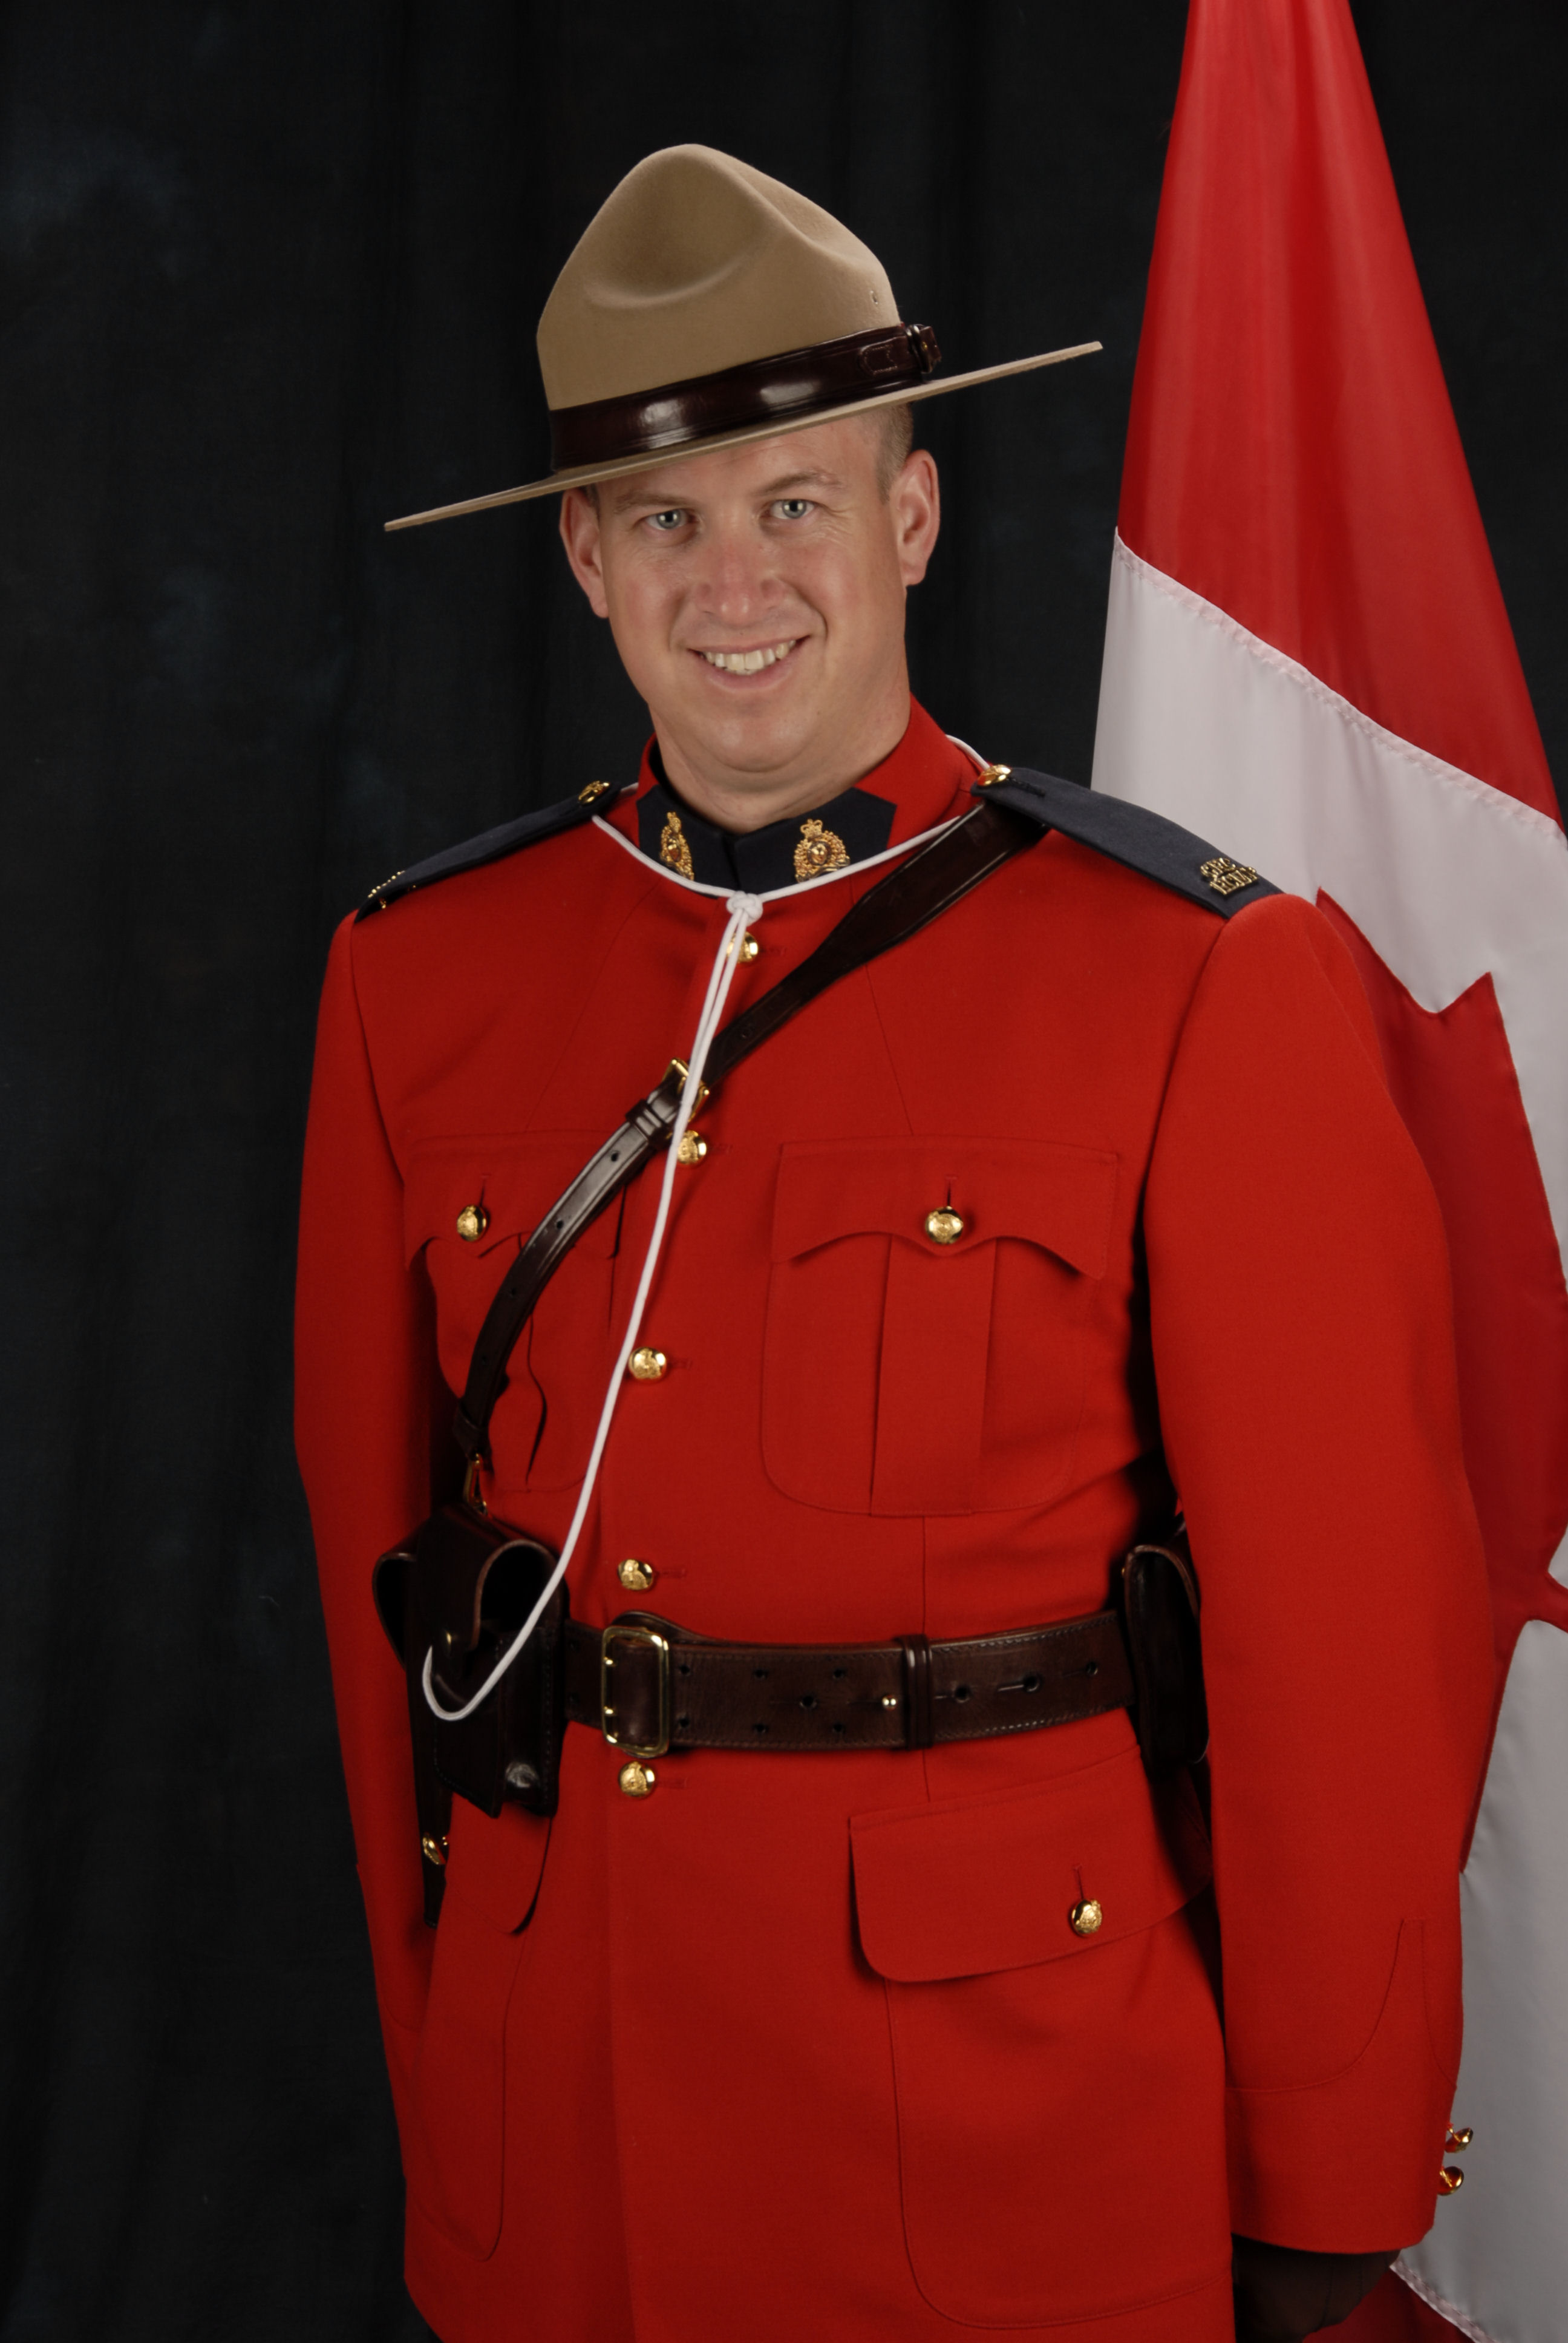 Photo of DEREK WILLIAM HENRY PINEO – Cst. PINEO's happier official RCMP photograph. This is how we, his friends and troop mates, remember him. He always had a way to make everyone around him smile and laugh.